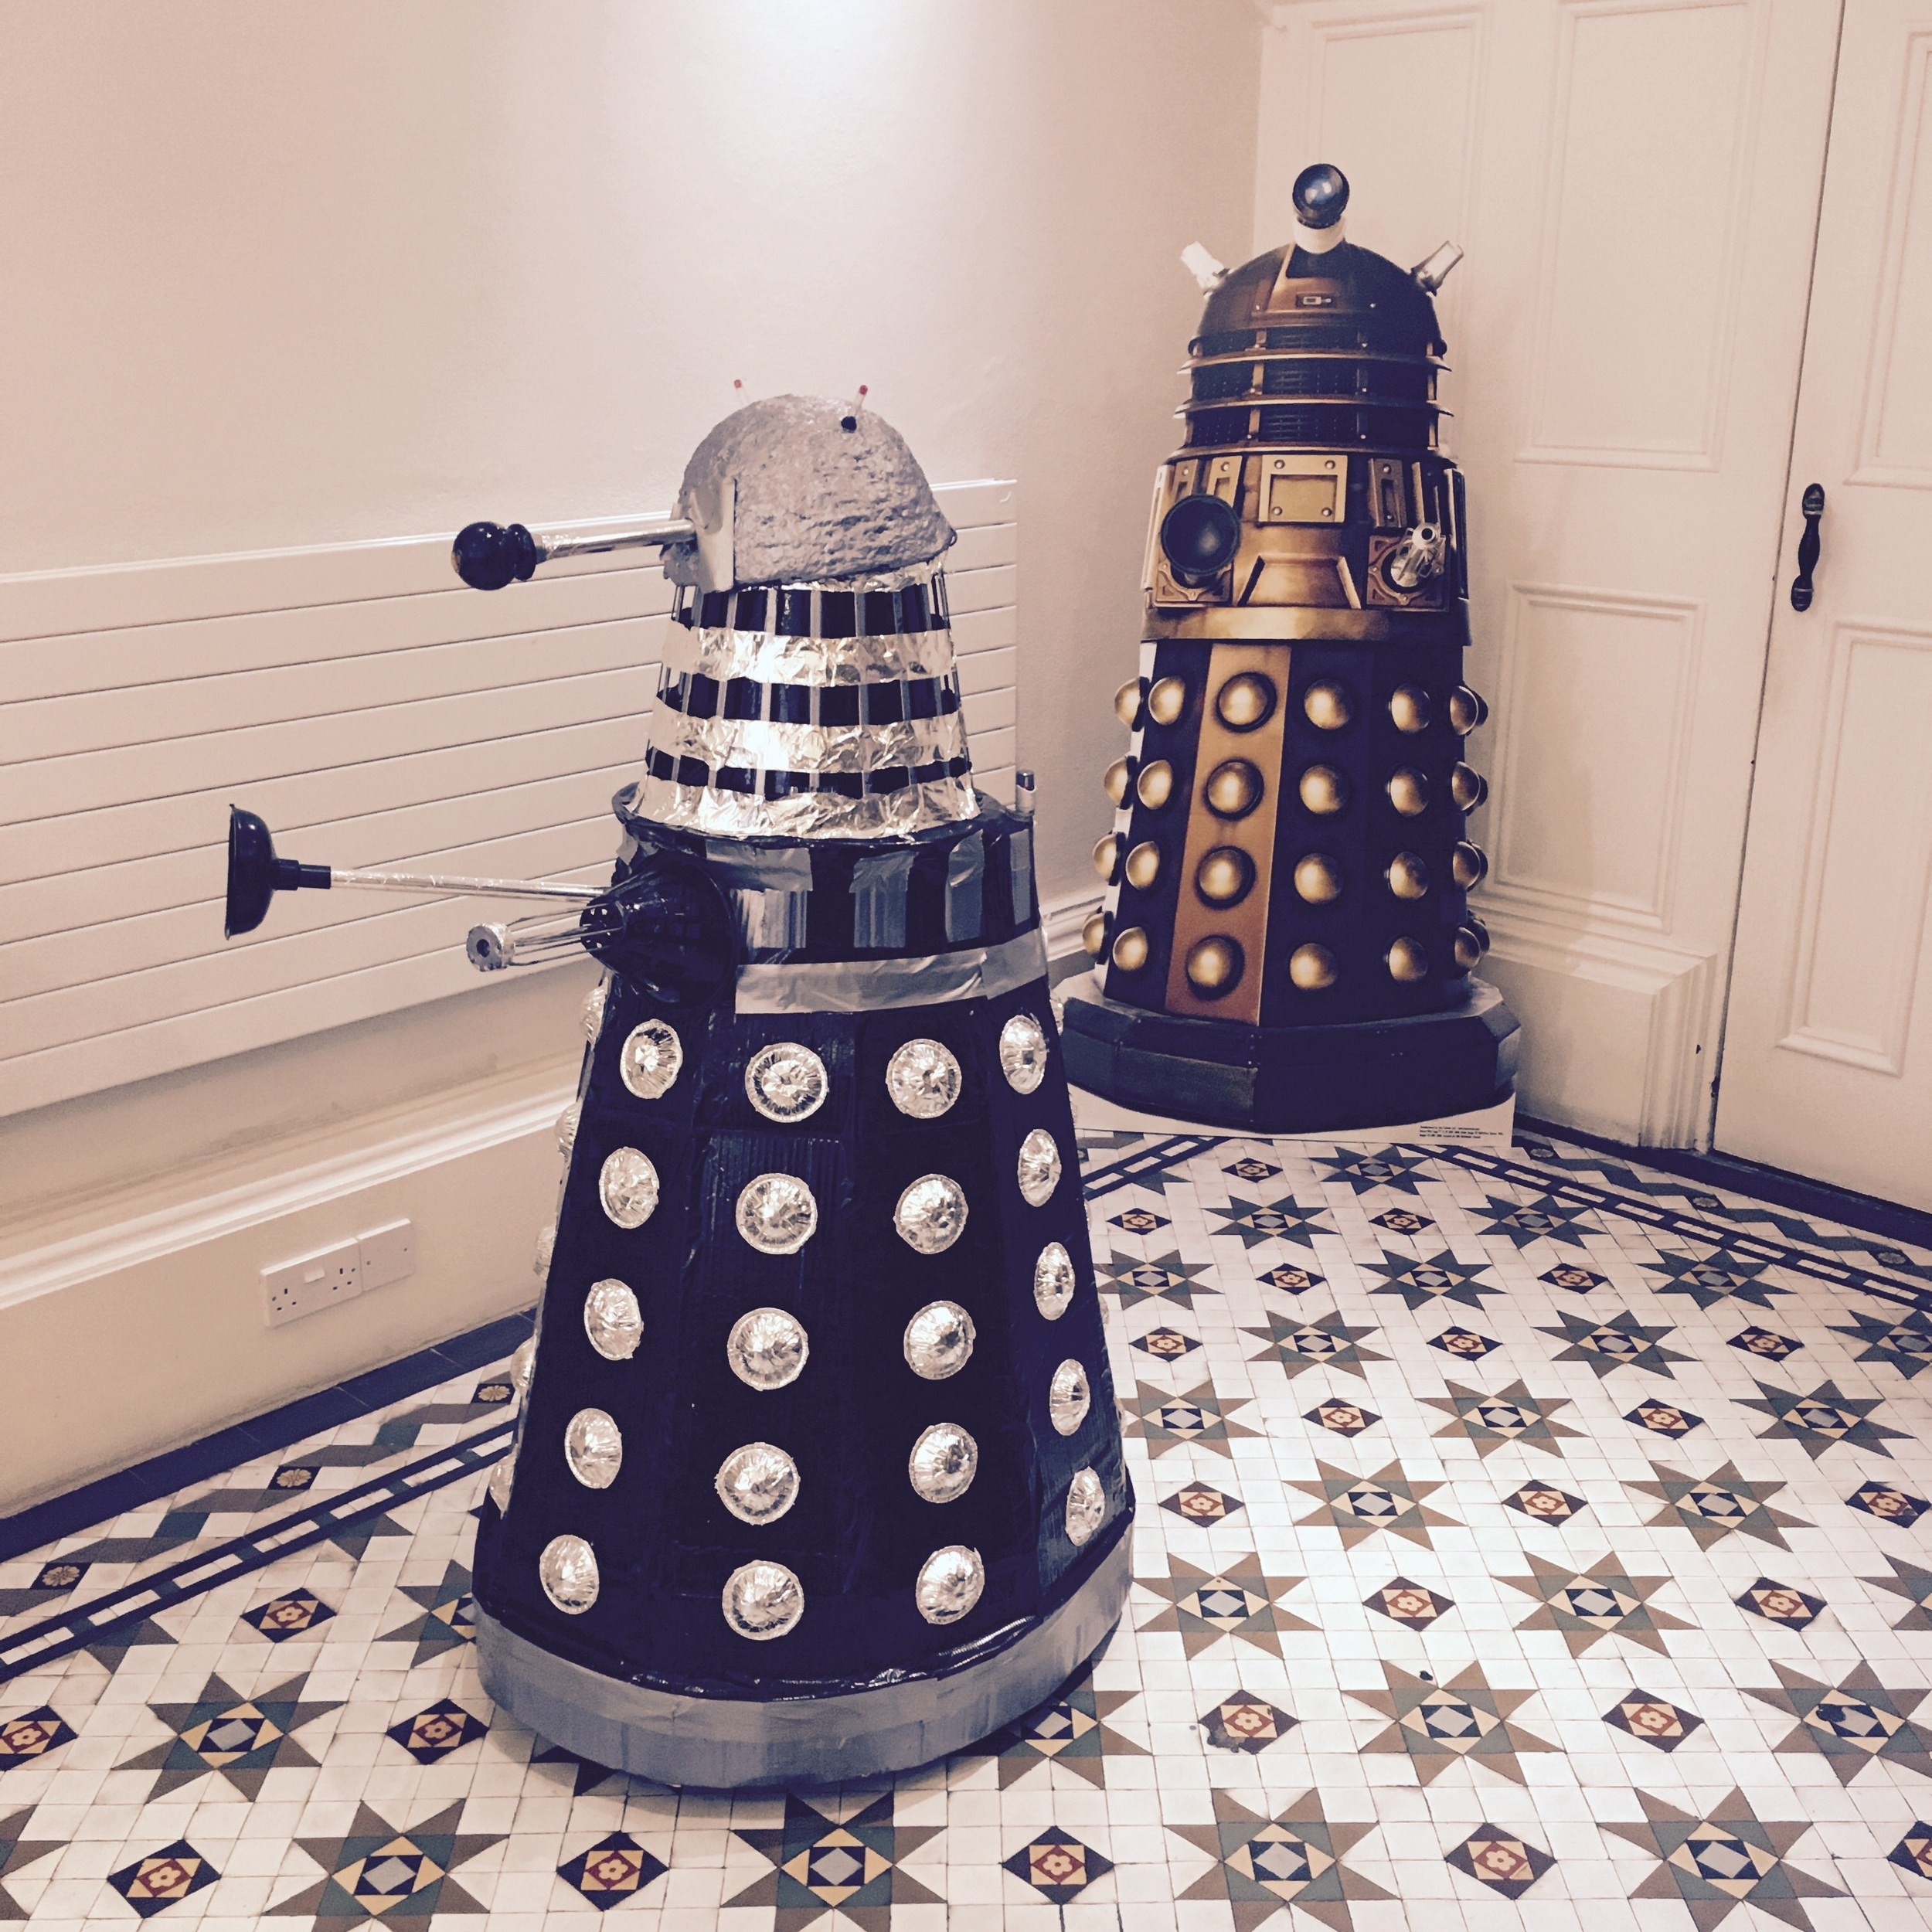 Daleks had invaded the library.